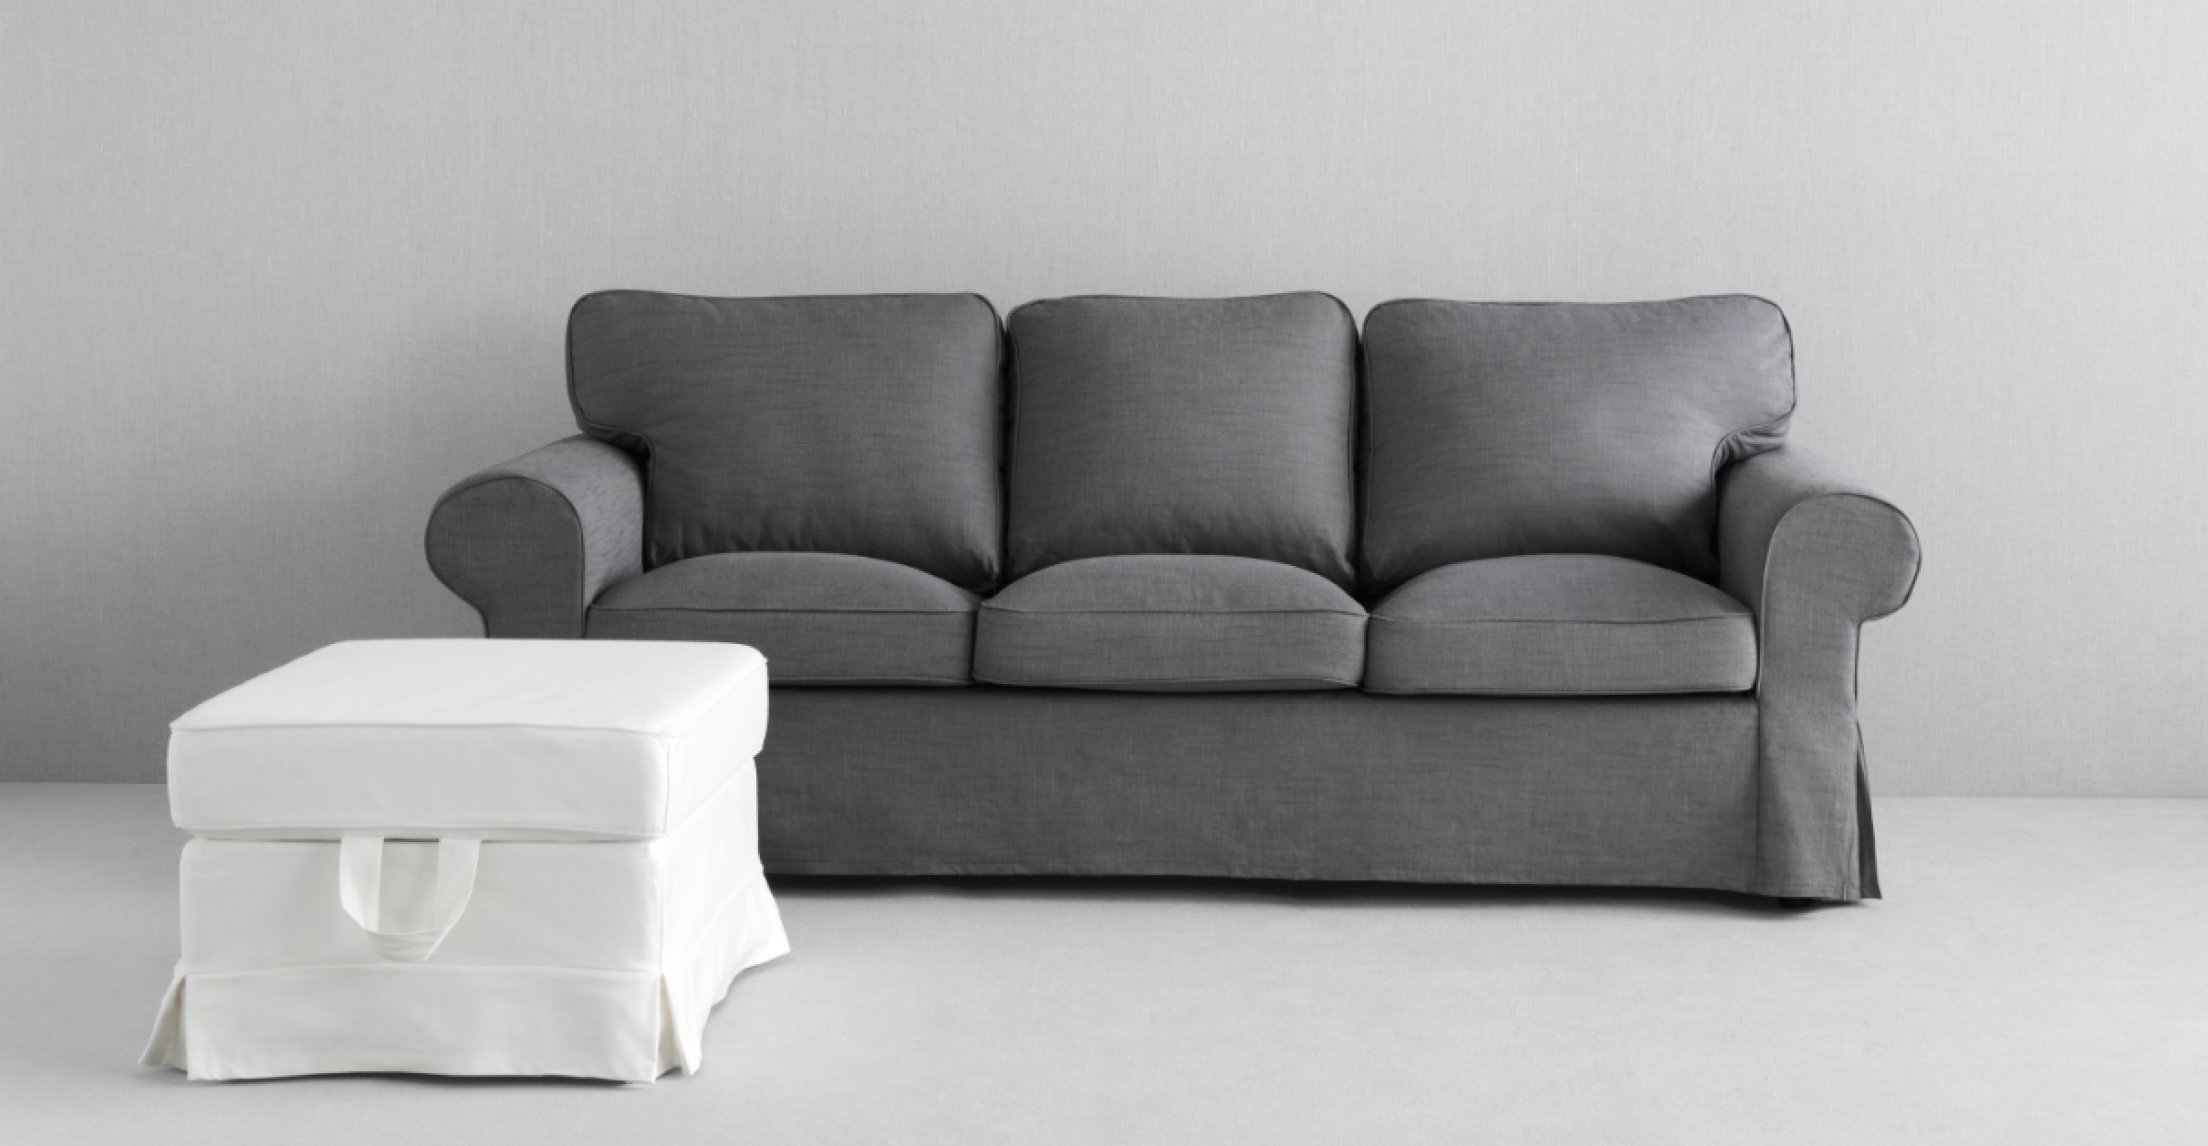 Ikea Sofa cover, Nordvalla dark gray 1428.8811.1034 by IKEA